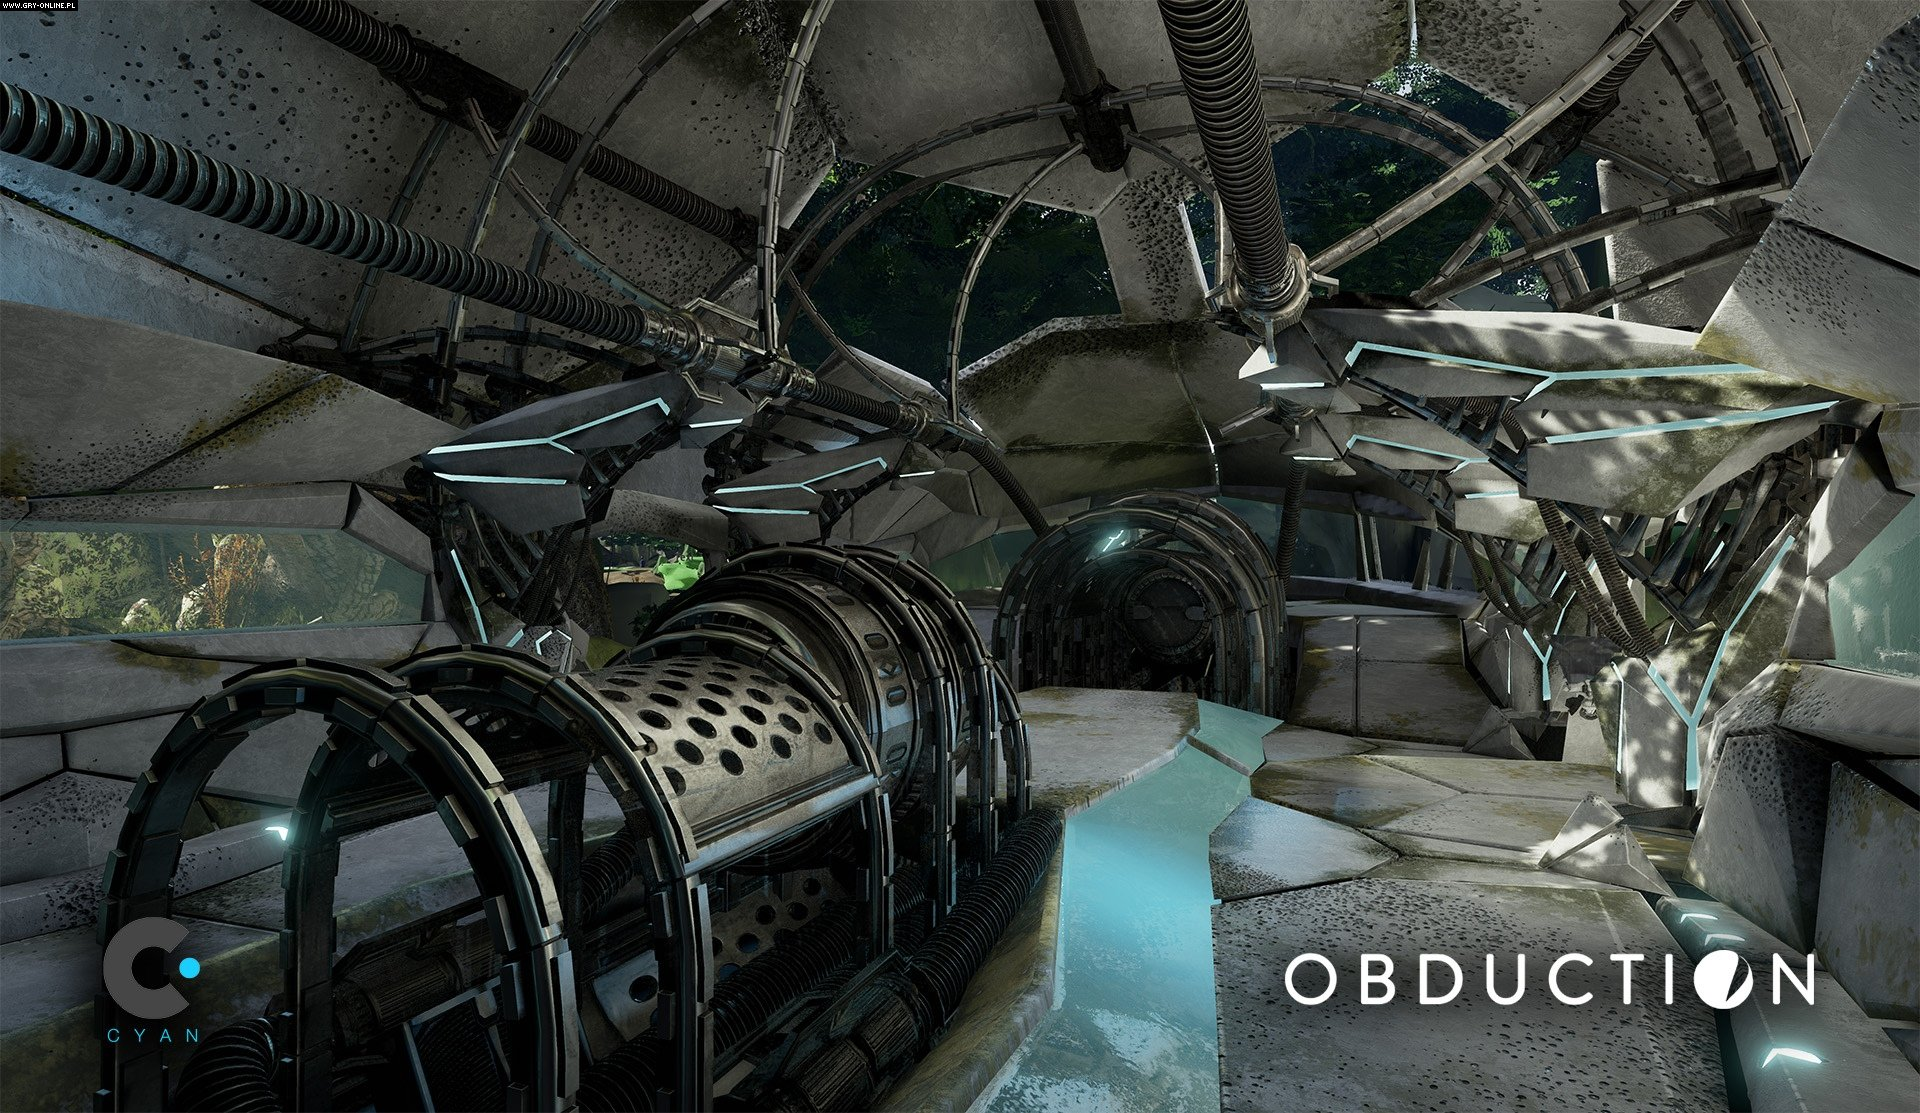 Obduction PC, PS4 Gry Screen 7/24, Cyan Inc.